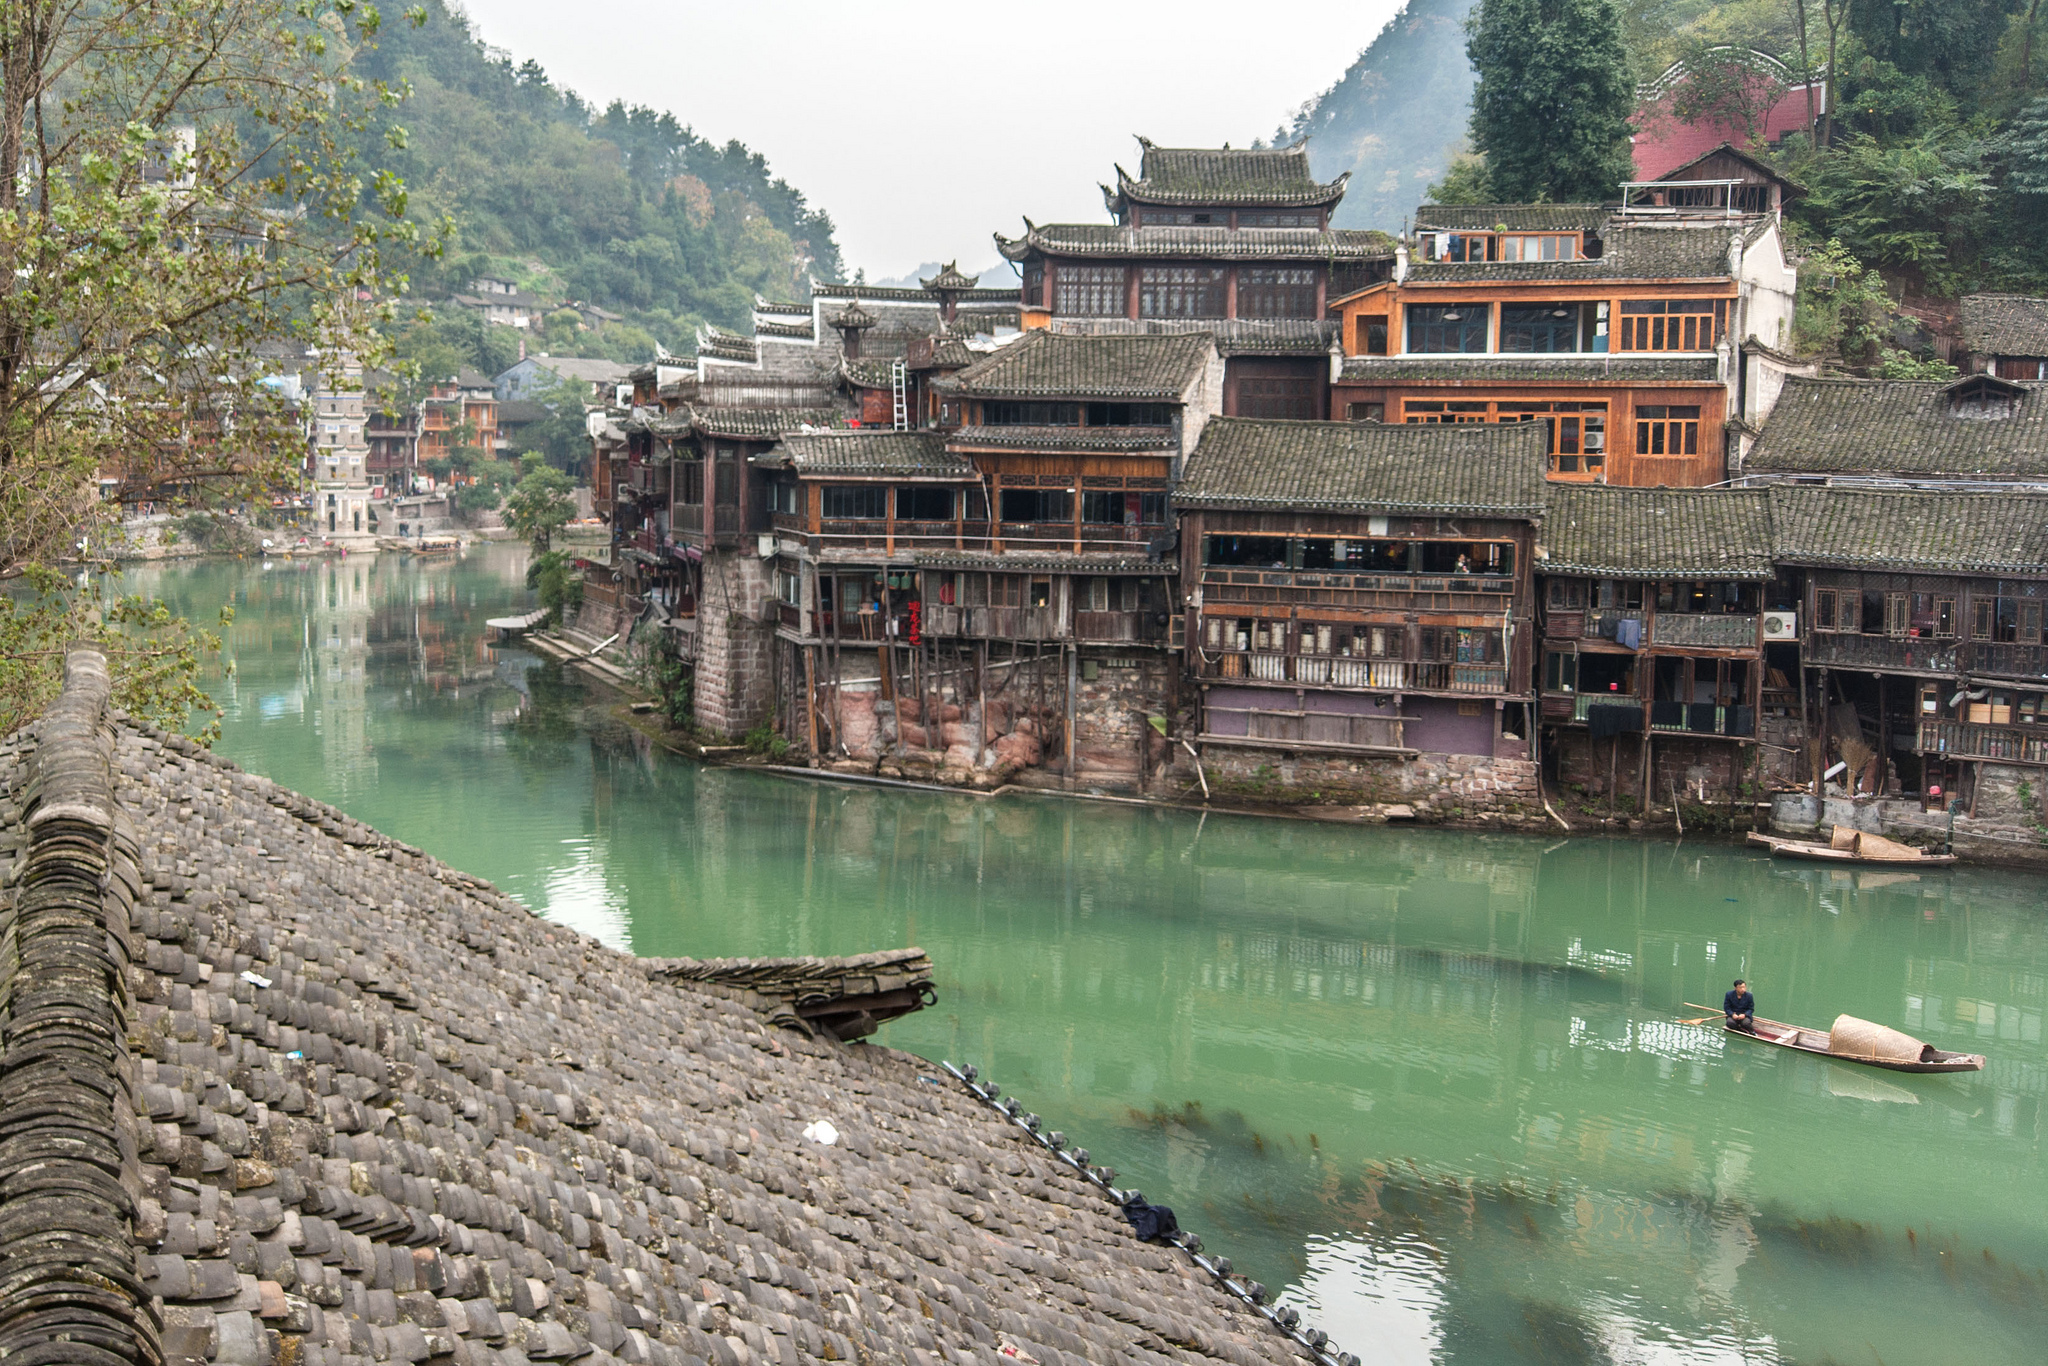 Fenghuang Ancient Town Most Beautiful City In China